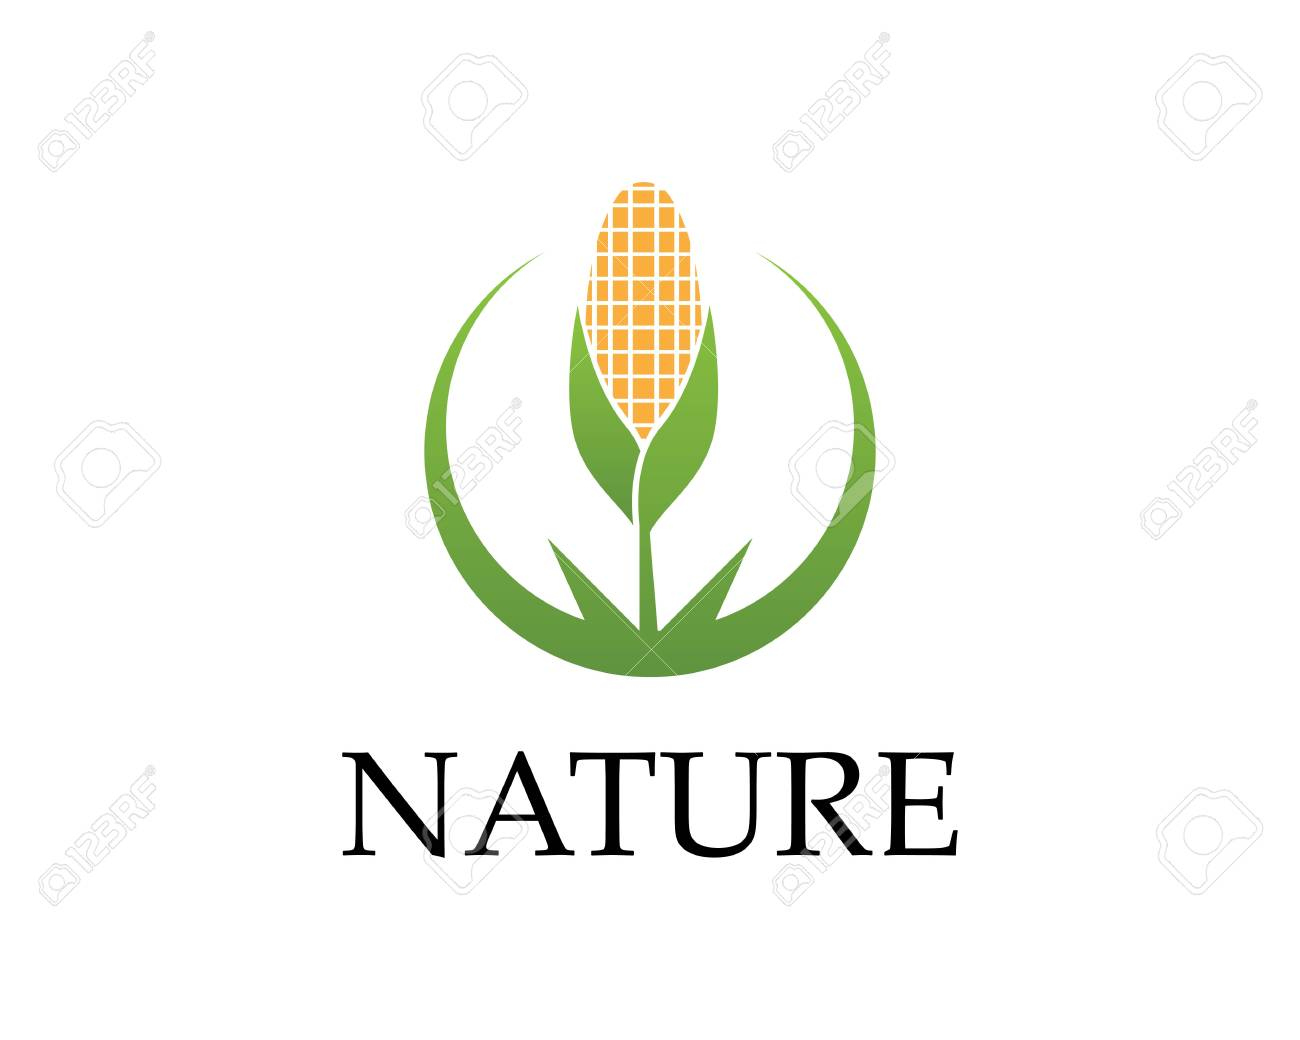 corn nature industry logo vector illustration royalty free cliparts vectors and stock illustration image 112119158 corn nature industry logo vector illustration